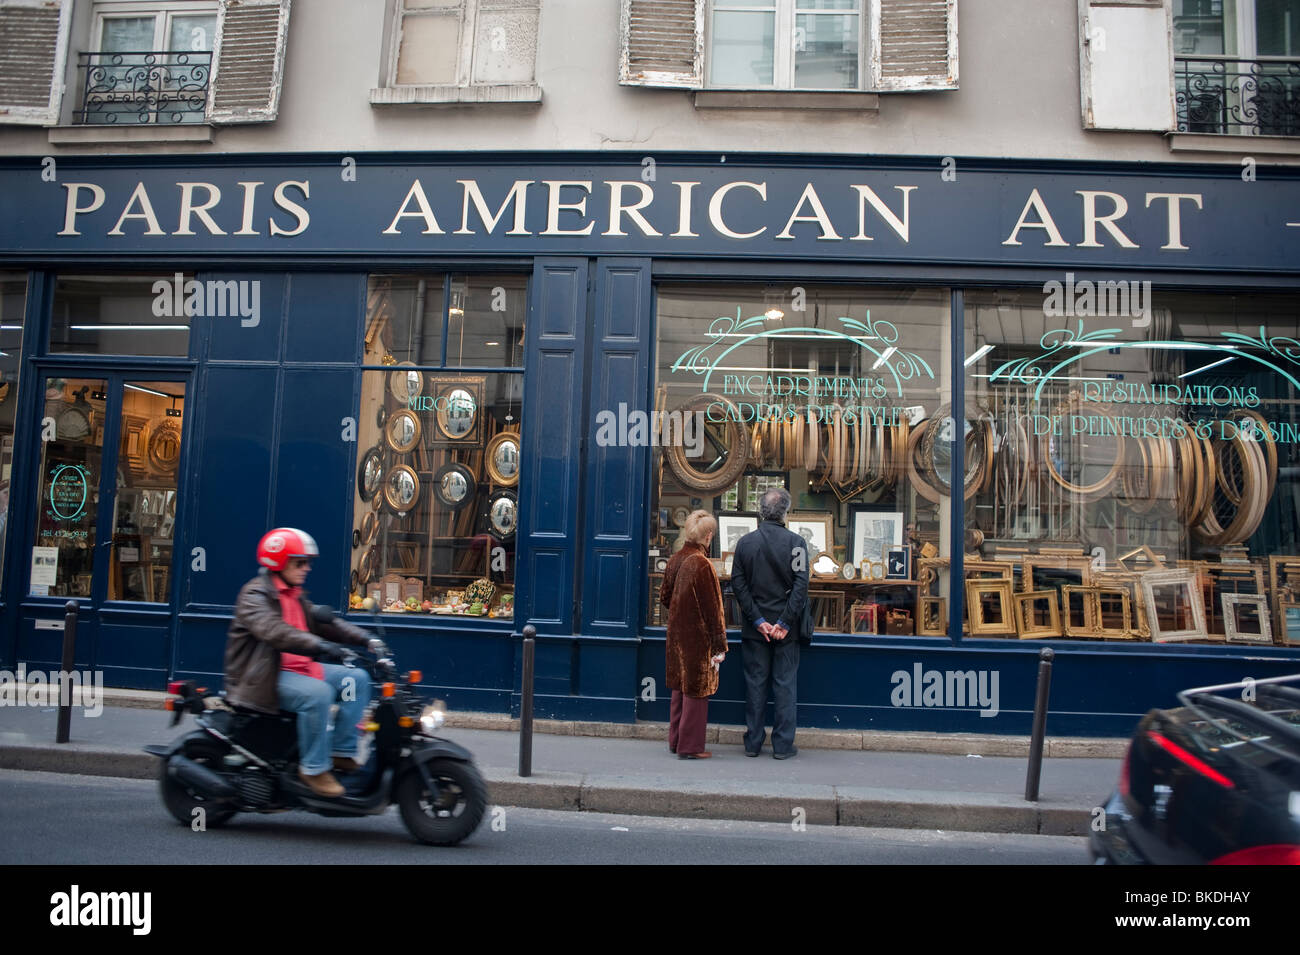 picture framing store in latin quarter paris american art outside storefront